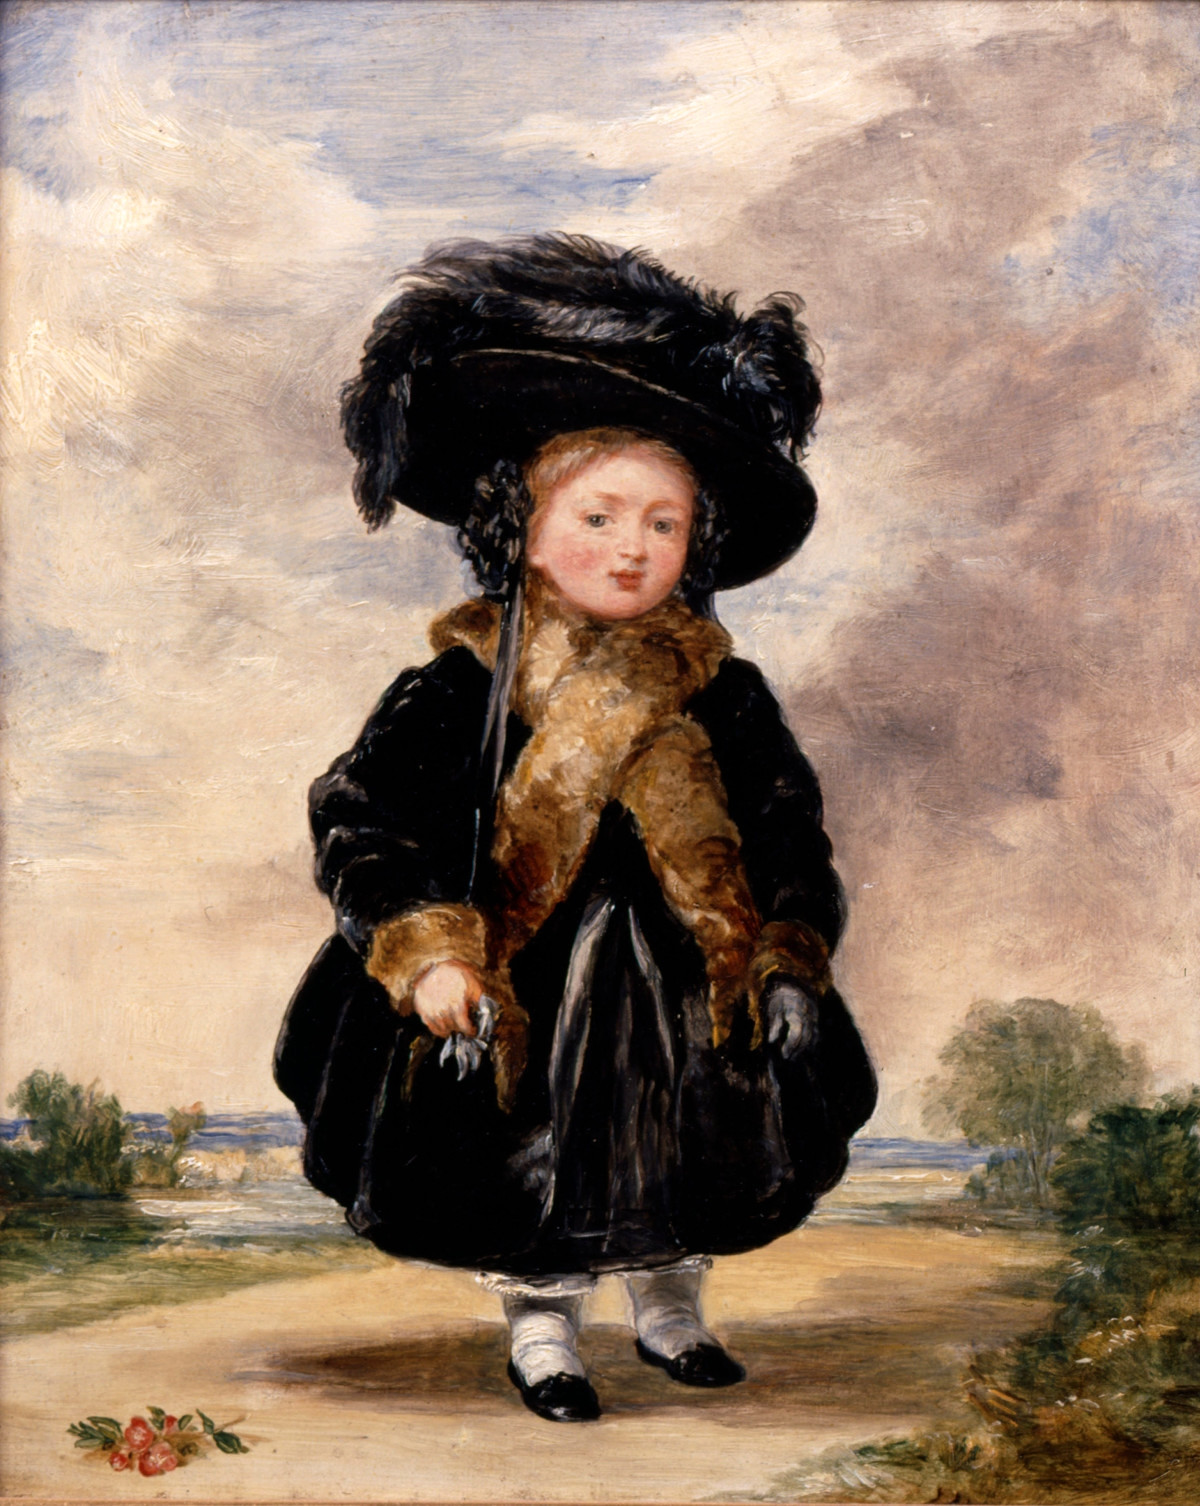 Victoria, aged four Painting by Stephen Poyntz Denning, 1823